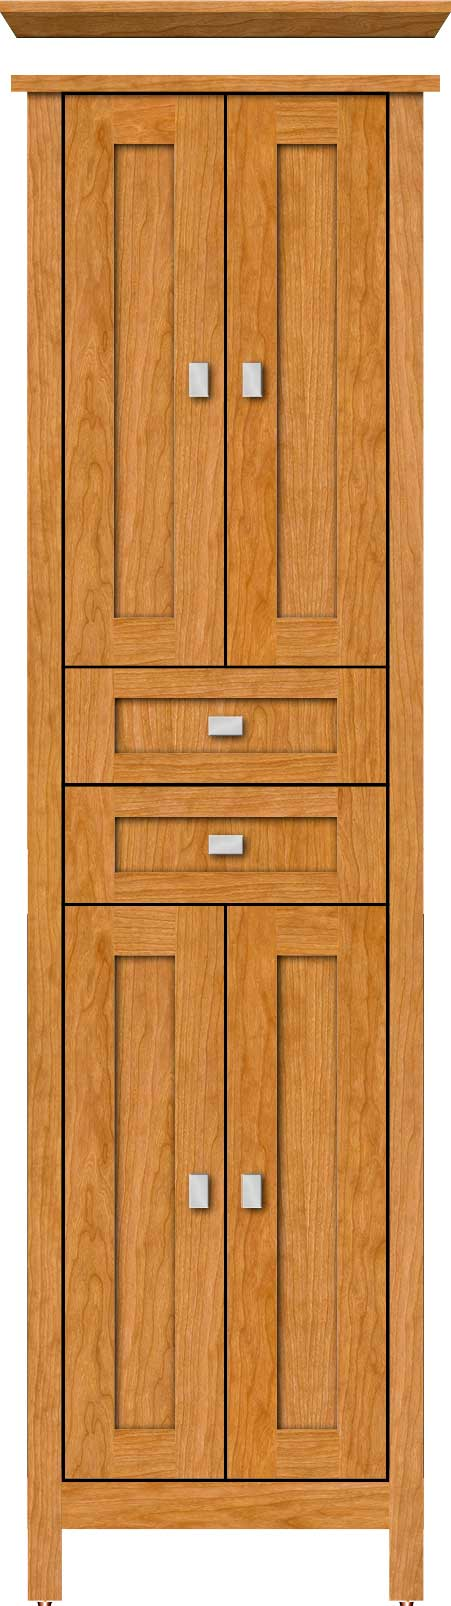 alkilinen - Strasser Woodenworks Alki Linen Tower, 4 Door Styles, 15 Finishes